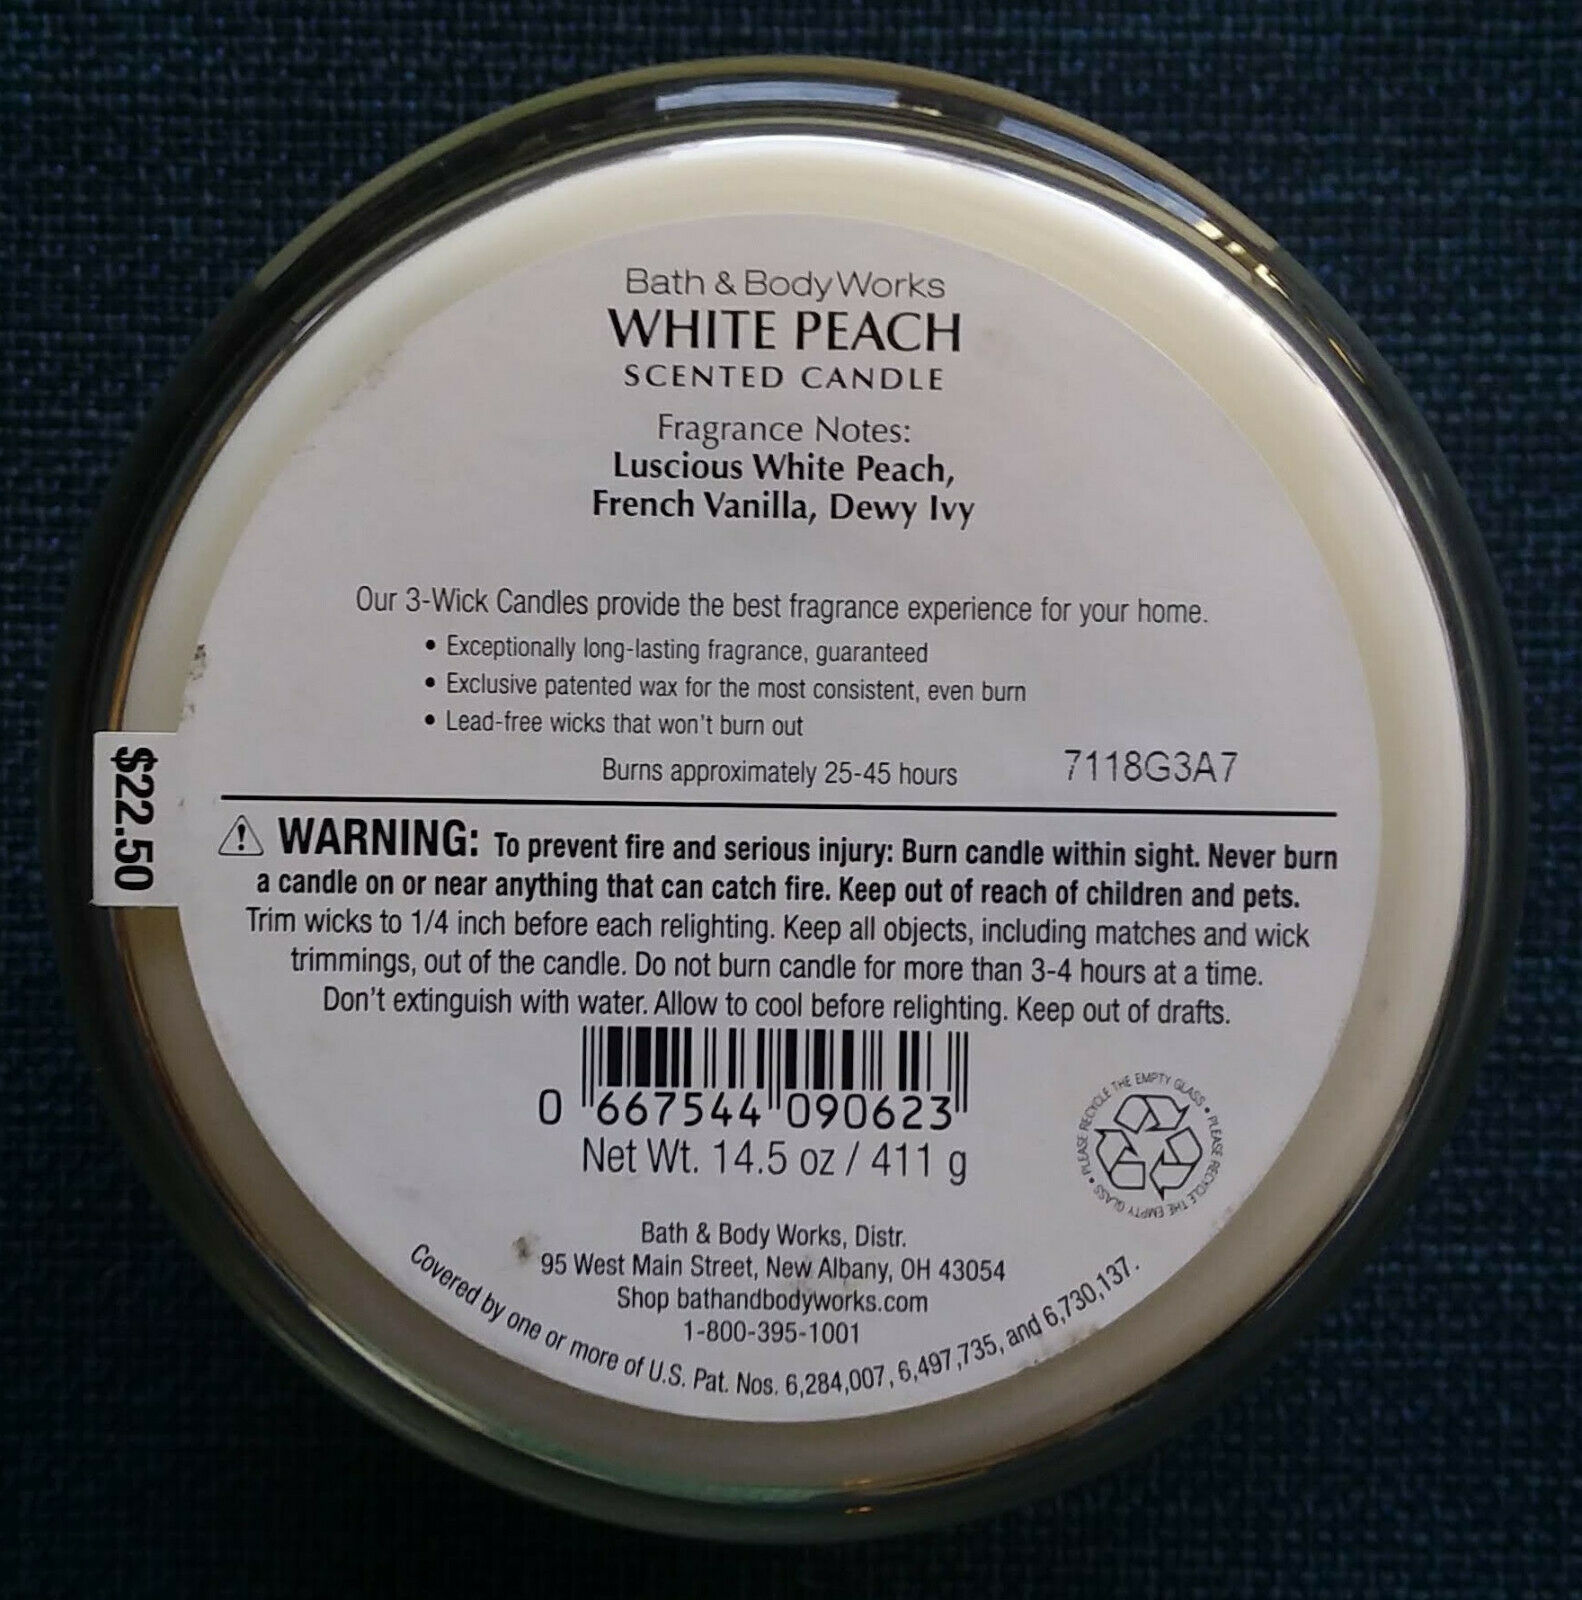 Bath and Body Works White Peach Scented Candle 3 Wick 14.5 Oz White Fruit image 4